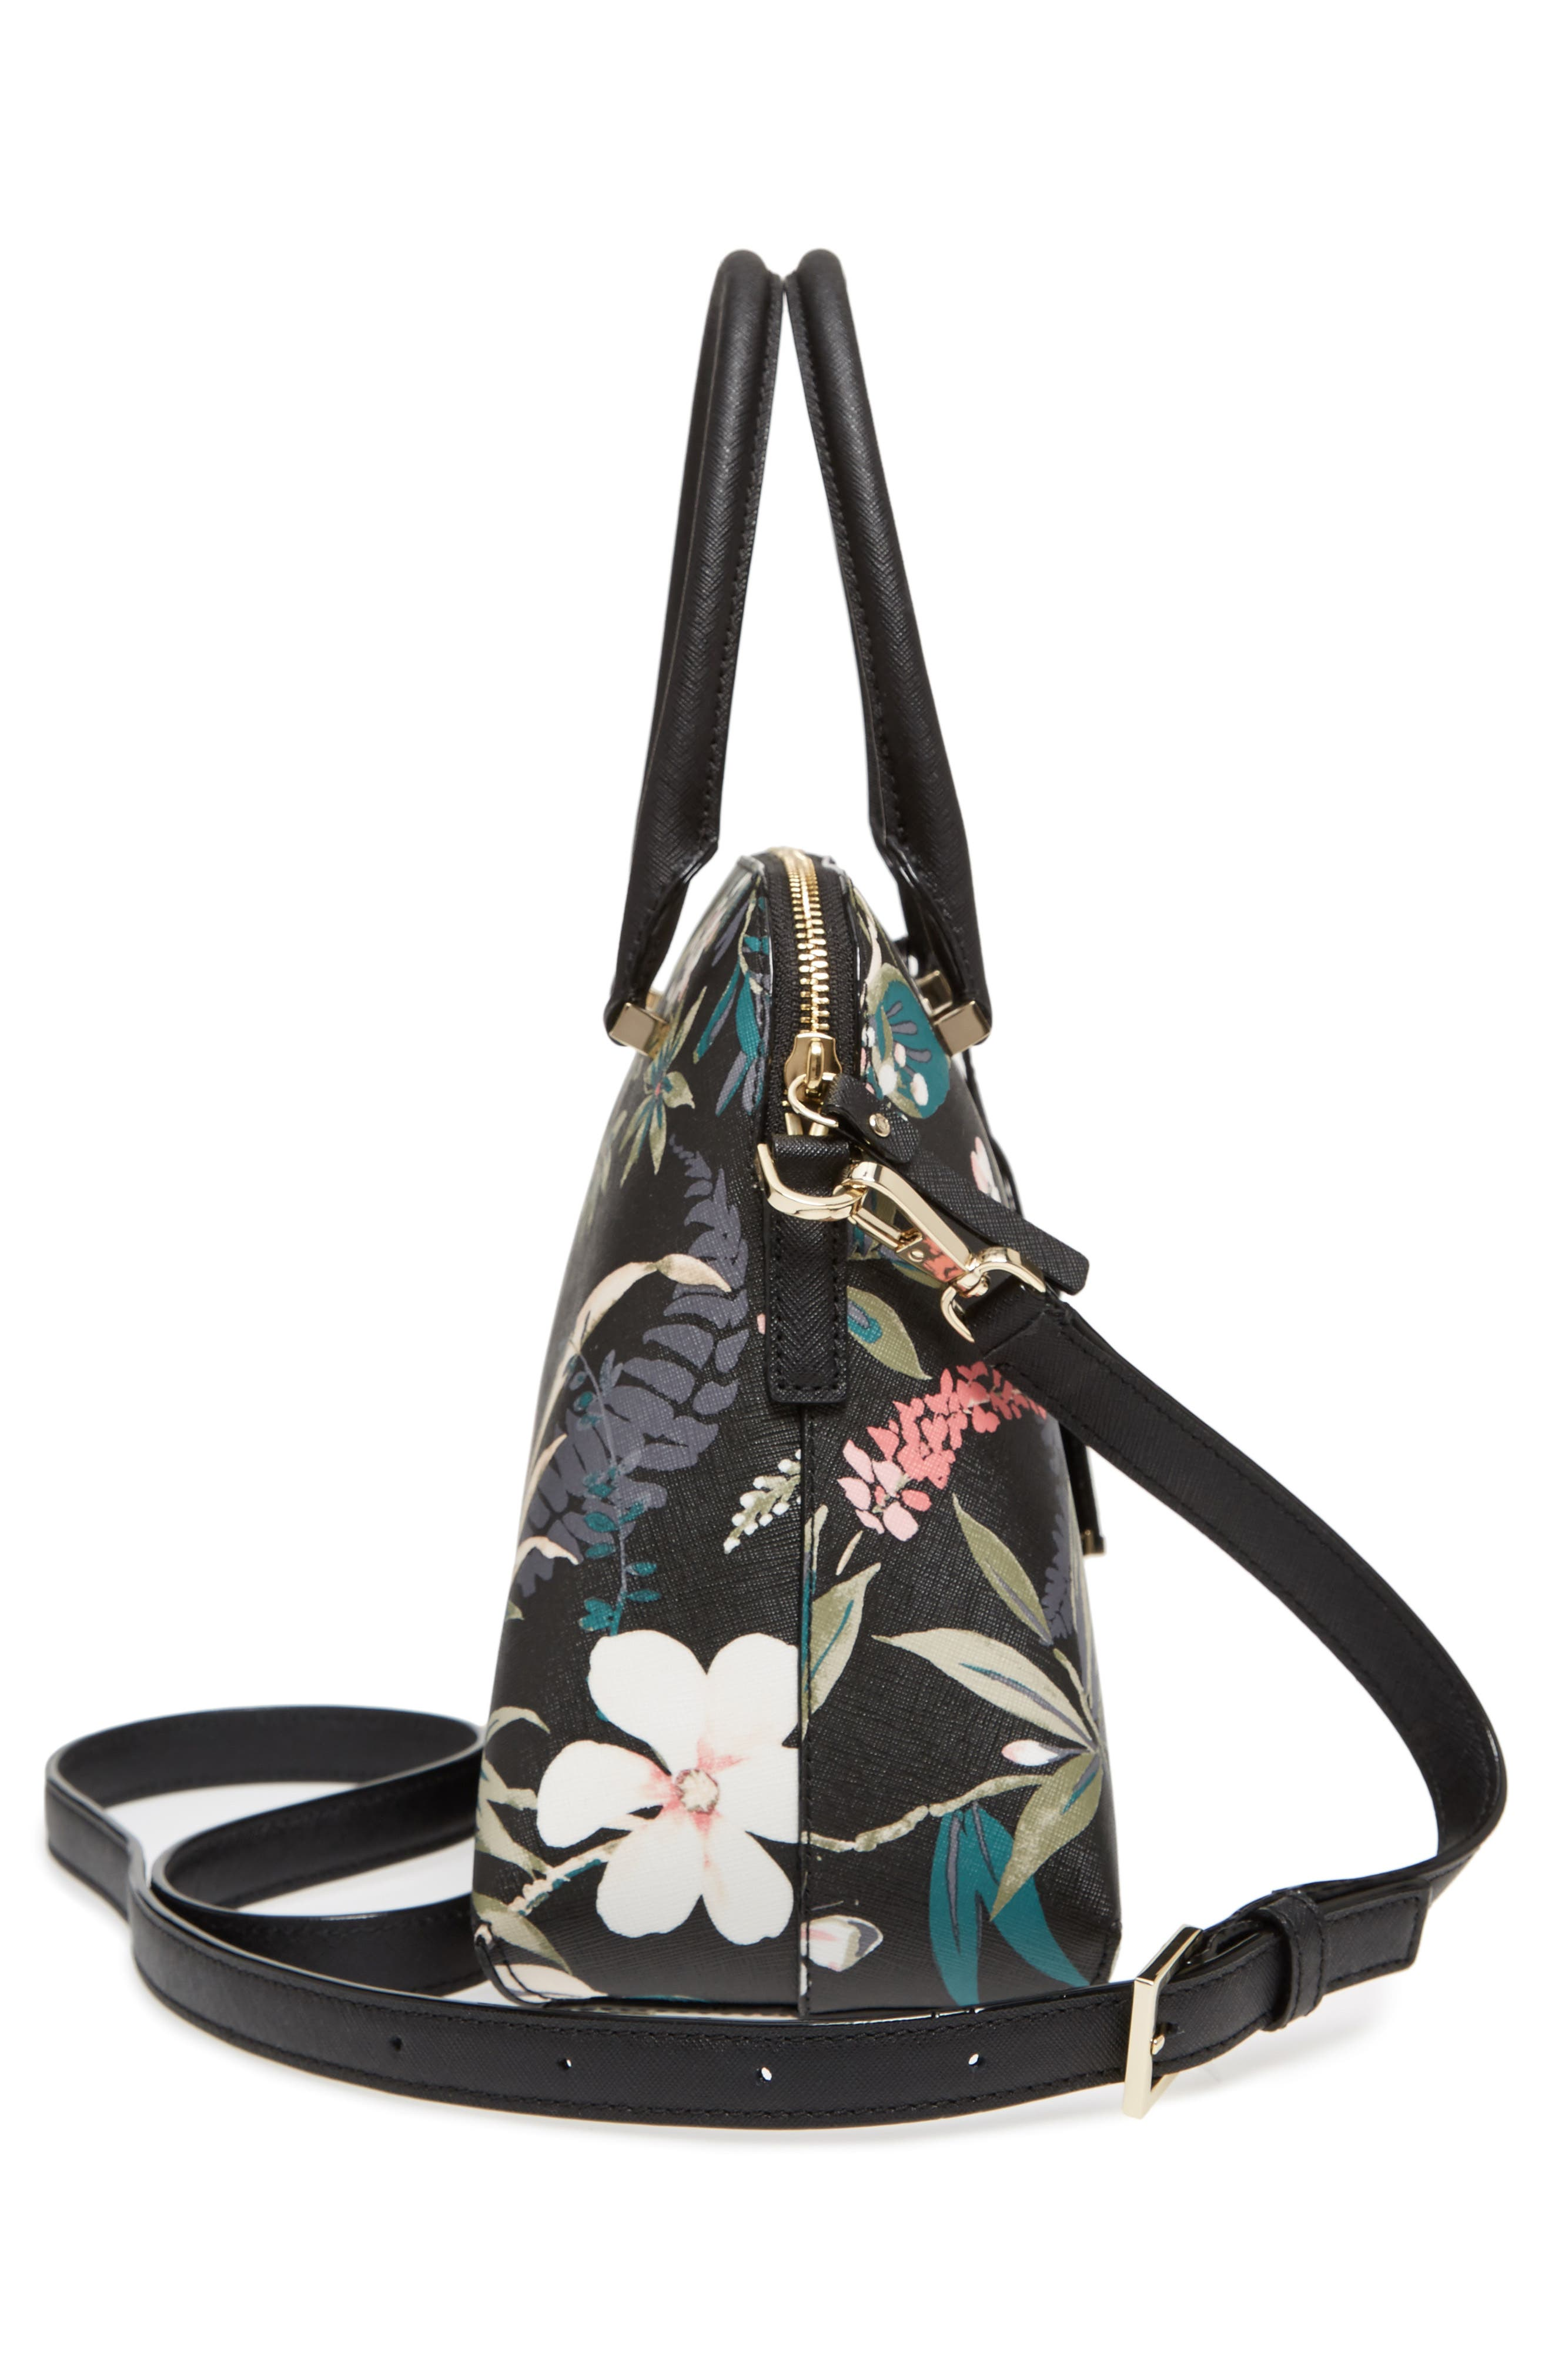 cameron street botanical maise faux leather satchel,                             Alternate thumbnail 5, color,                             Black Multi